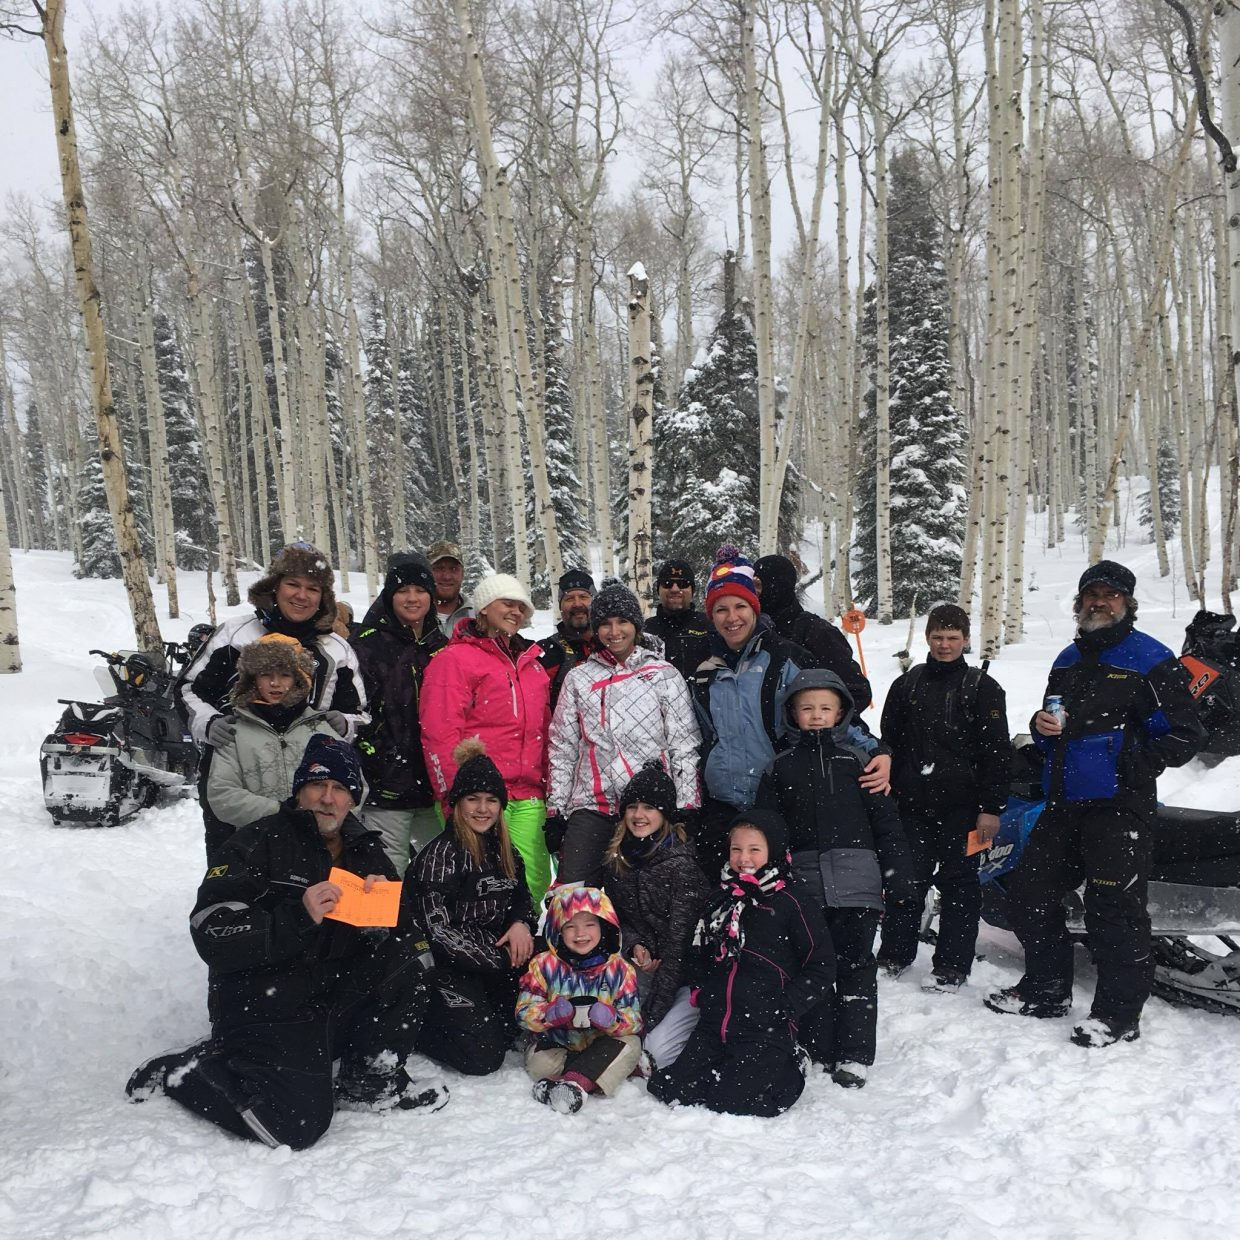 Riders gather together between stops at Jan. 21's annual Northwest Colorado Snowmobile Poker Run. Participants collected playing cards at stations around Freeman Reservoir trails, with the winner having the best hand.